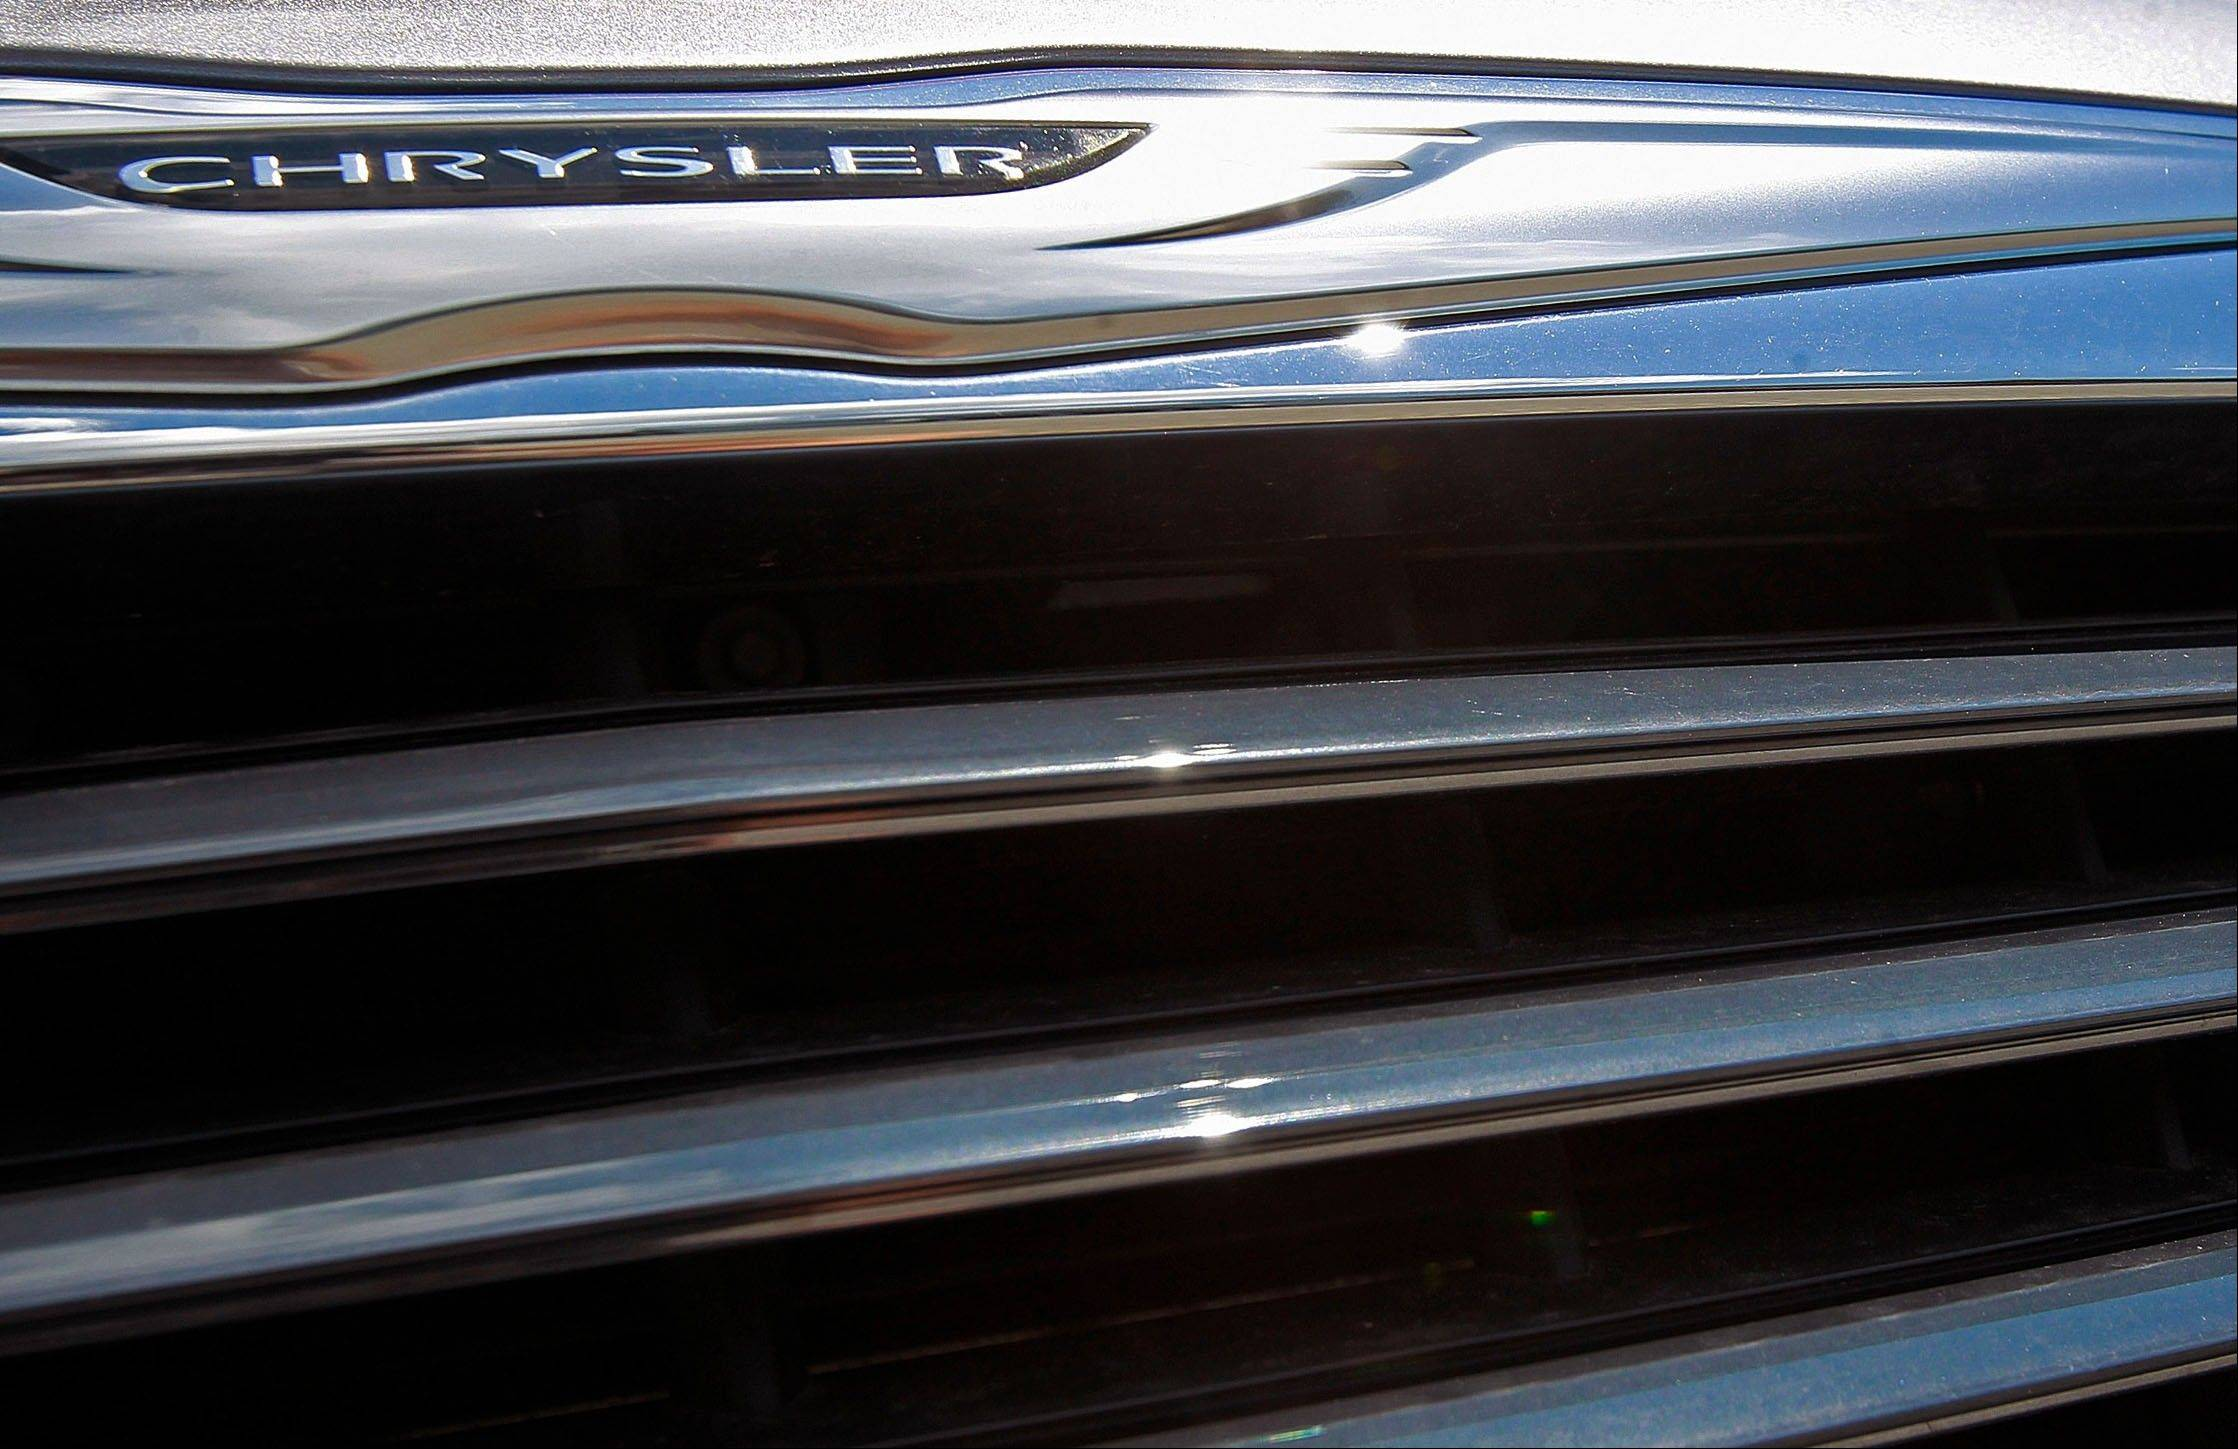 A United Auto Workers retiree health-care trust, which owns the 41.5 percent of Chrysler not held by Fiat, is seeking to sell shares on the market after failing to reach agreement with the Italian automaker on the stake's price.